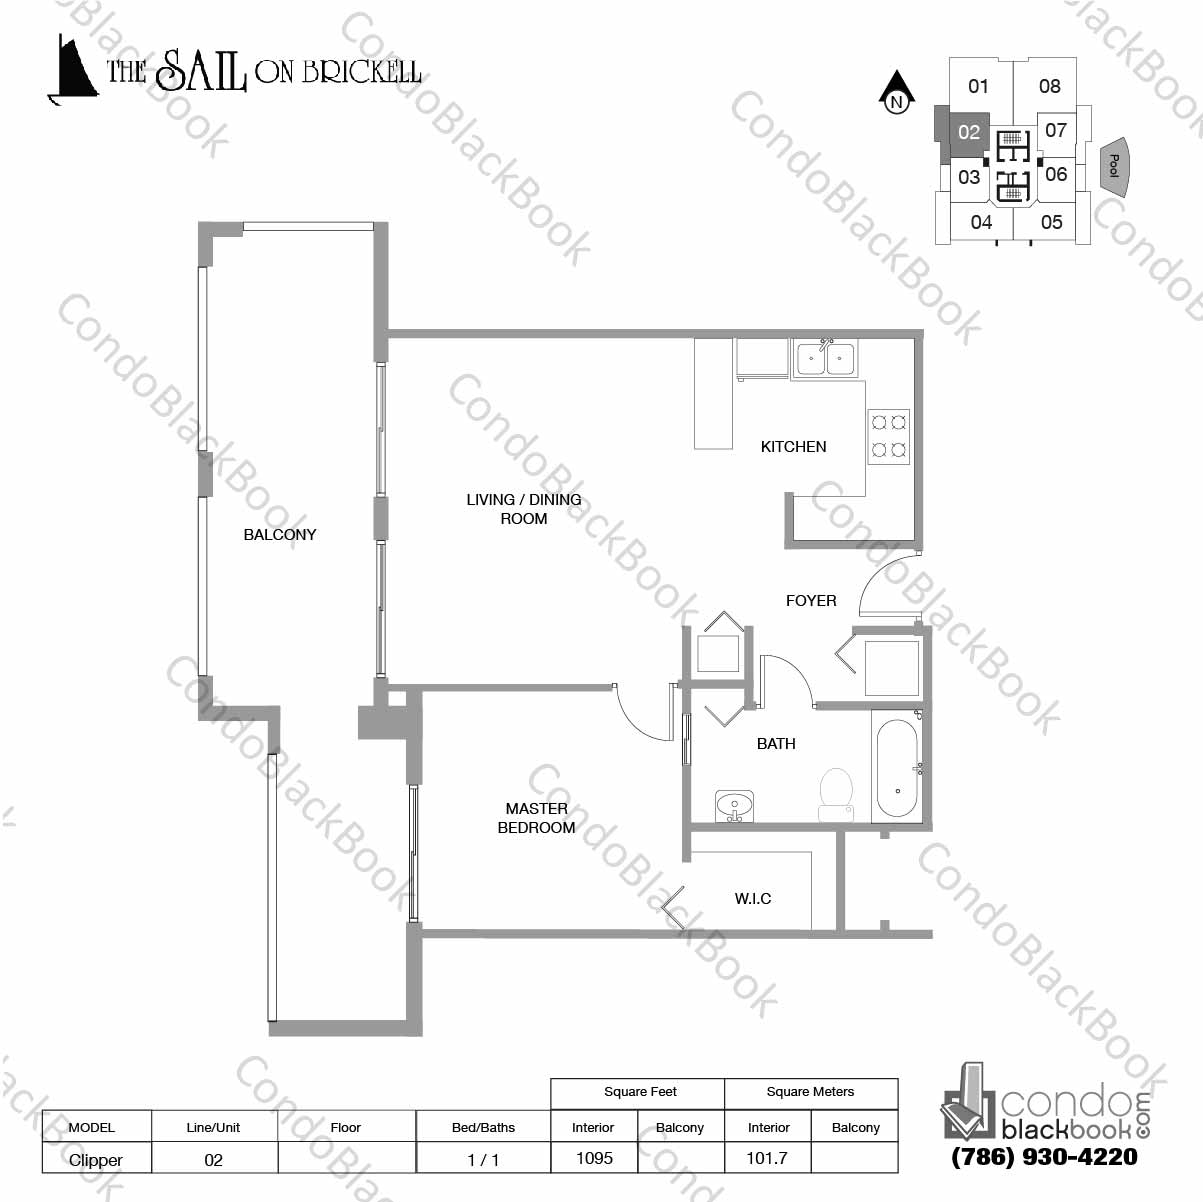 Floor plan for Sail on Brickell Brickell Miami, model Clipper, line 02, 2 / 2 bedrooms, 1095 sq ft